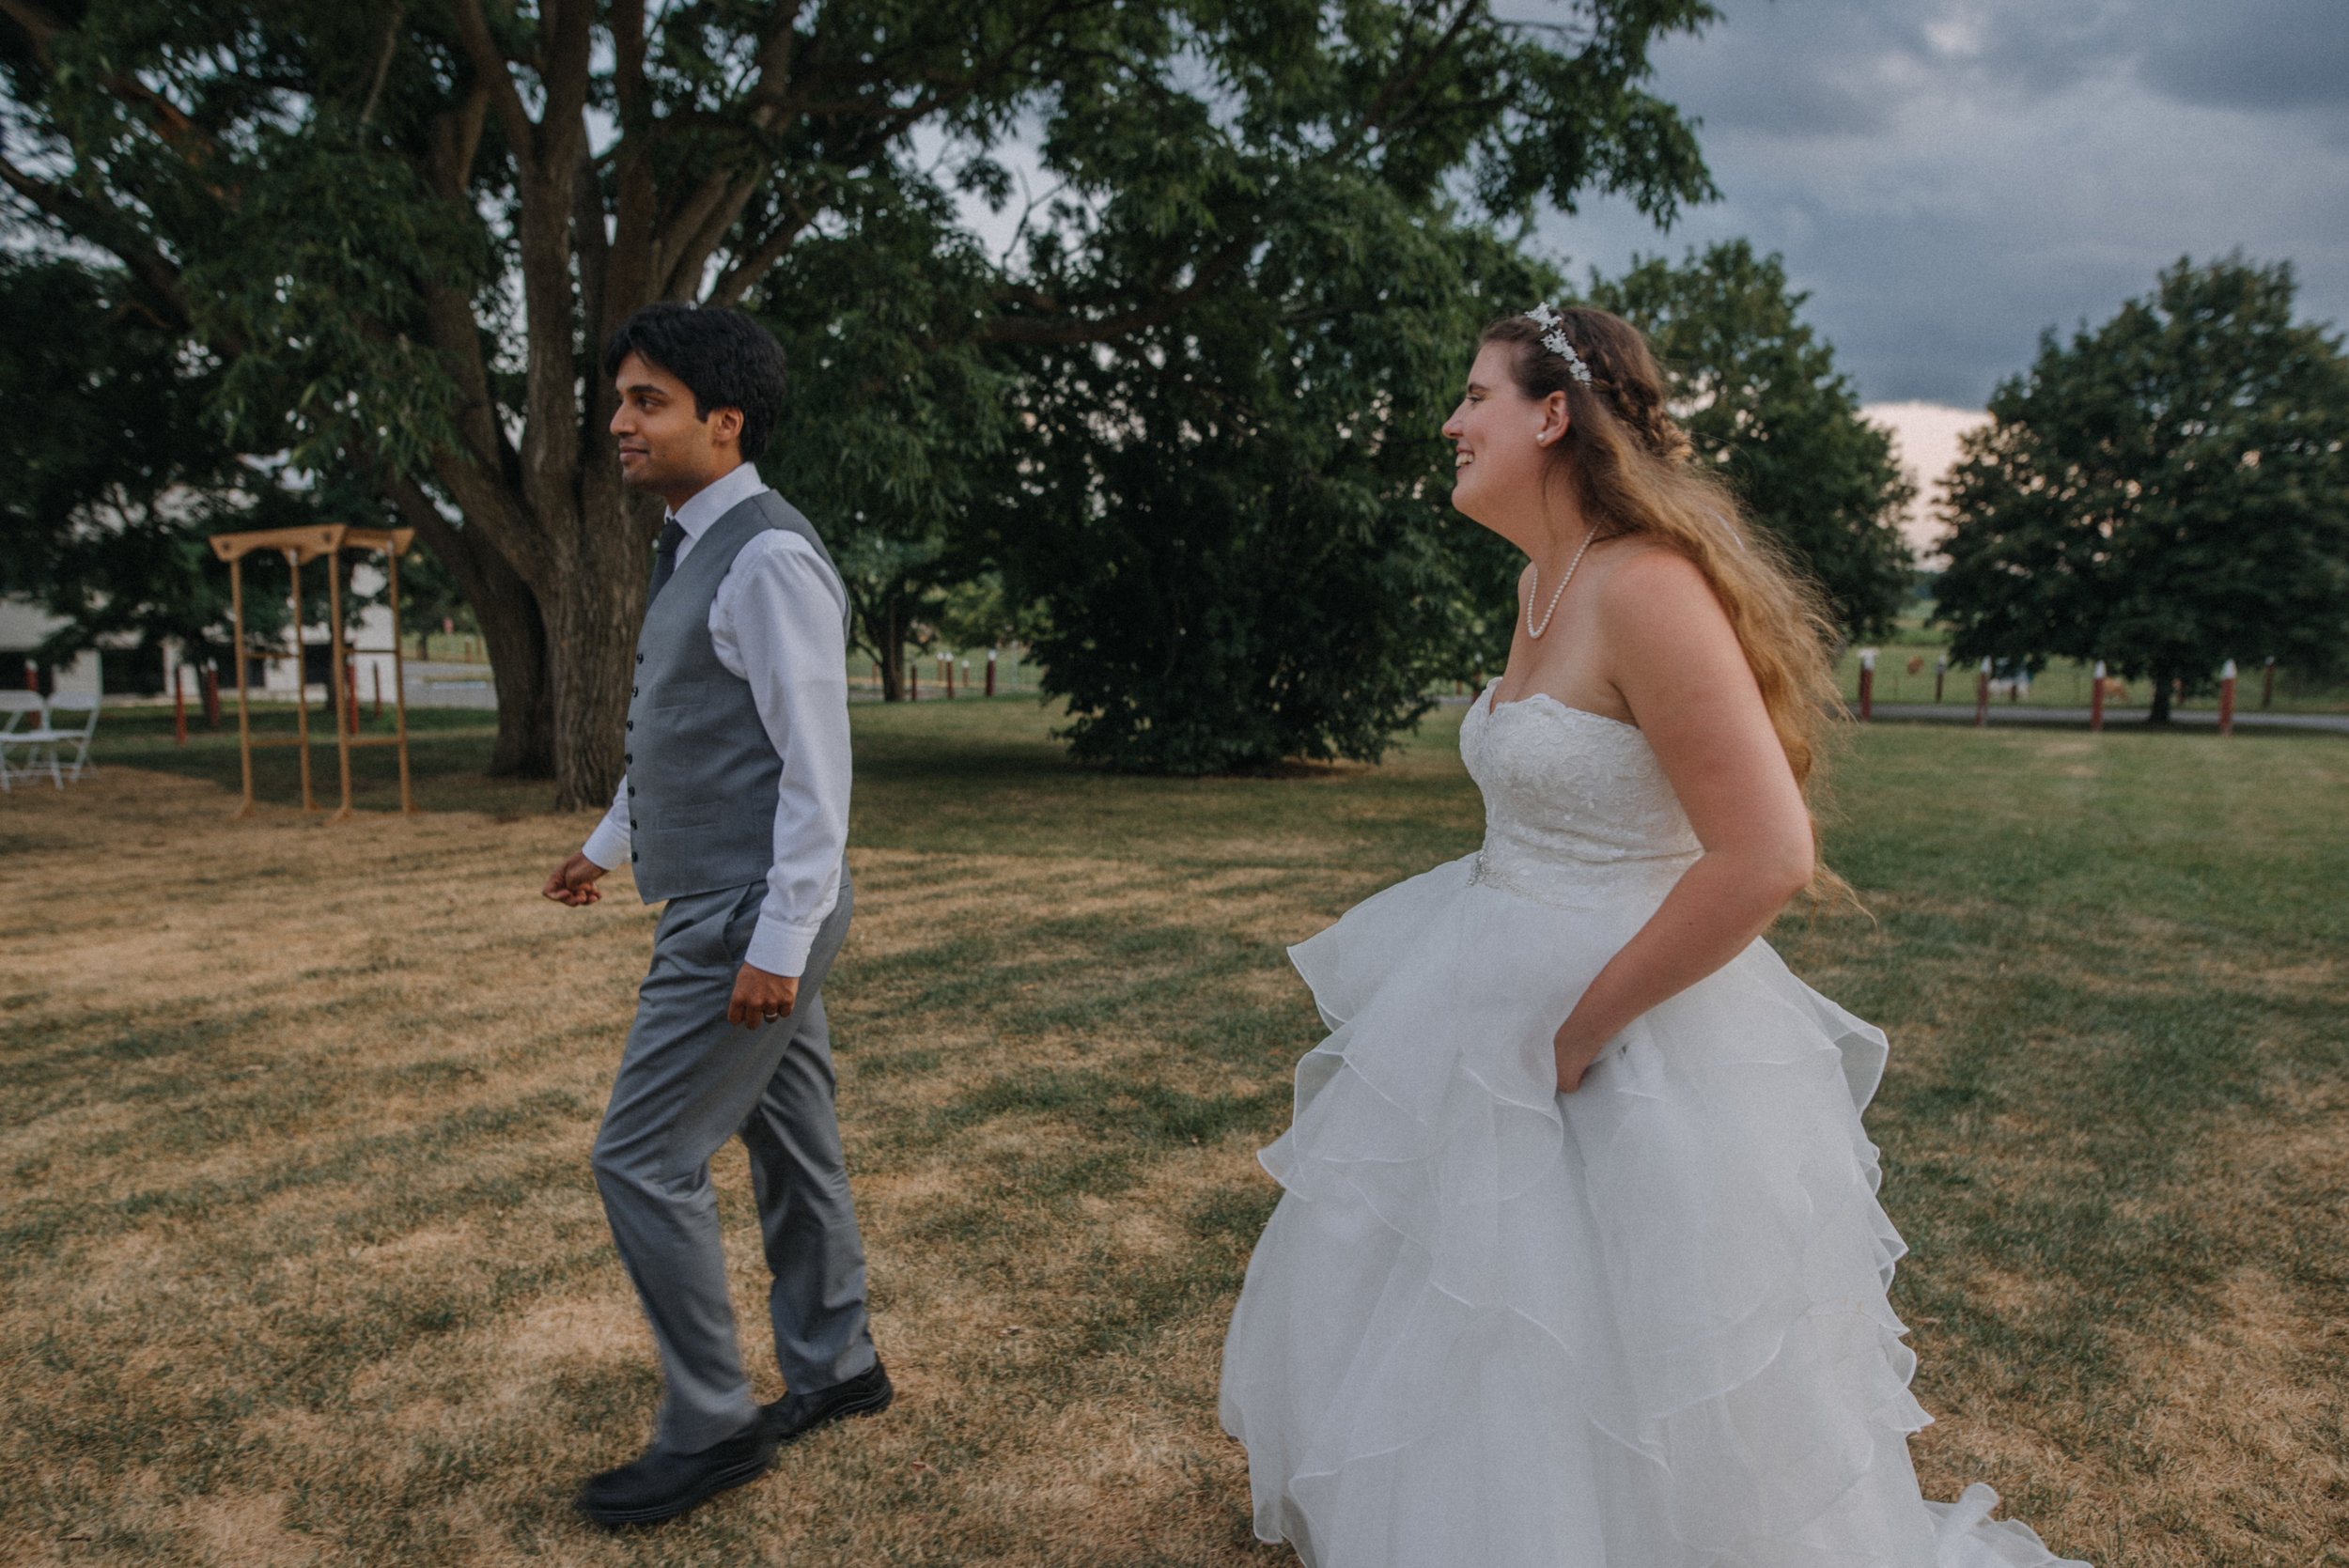 photographe_gatineau_mariage_wedding_photographer_ottawa_candid_lifestyle_documentary_natural_family_familly (16).jpg